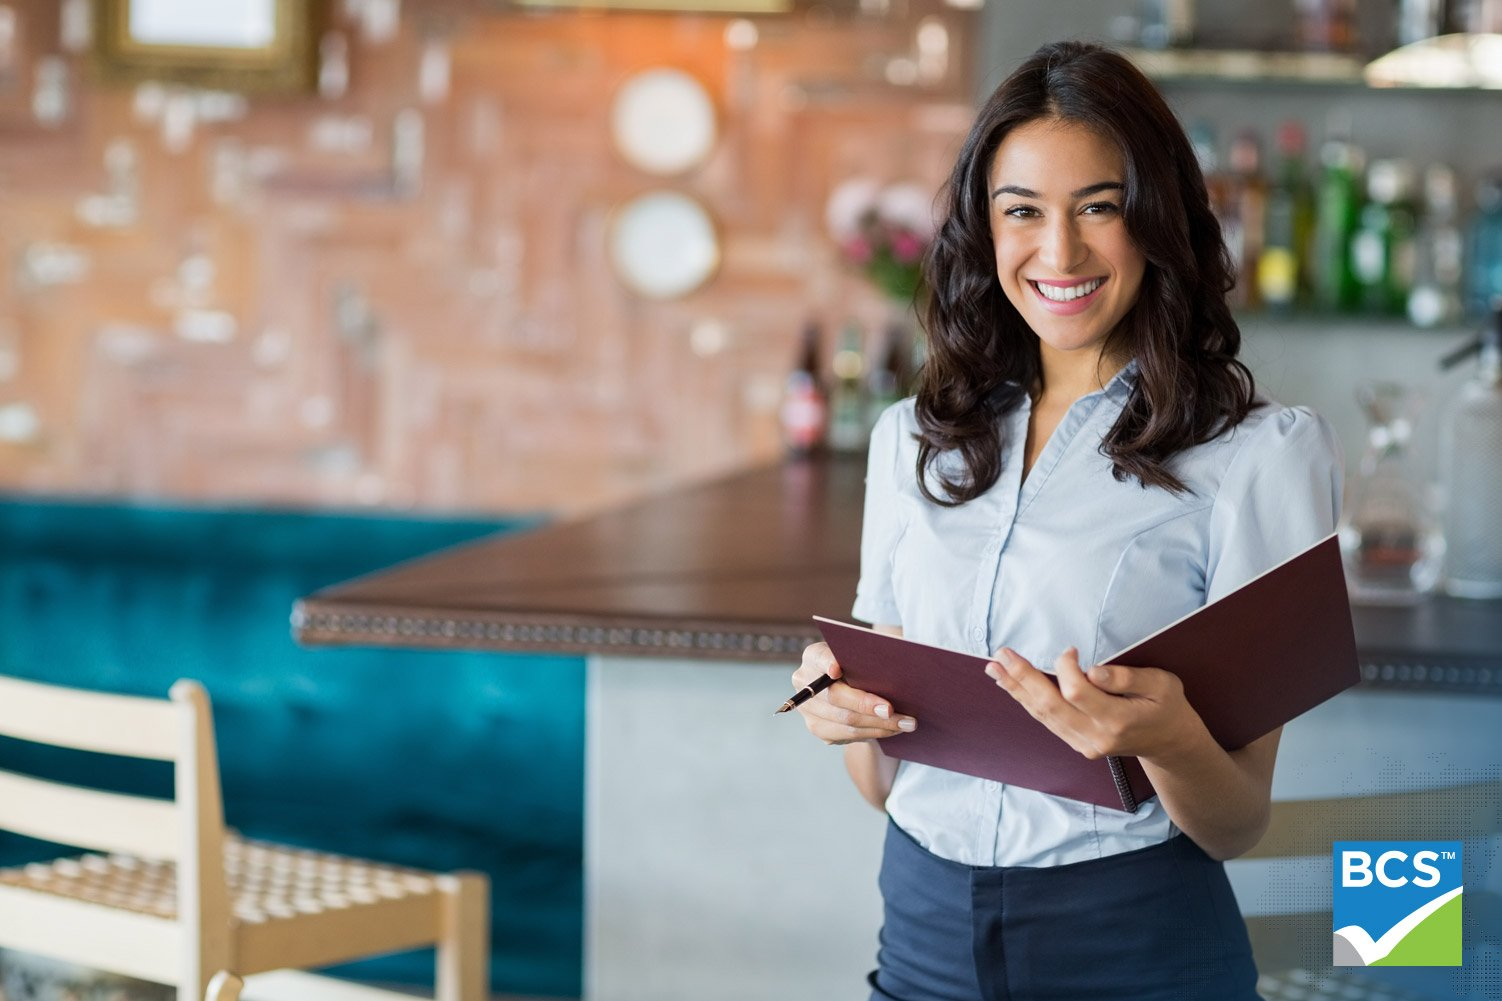 Smiling mixed race waitress holding a file